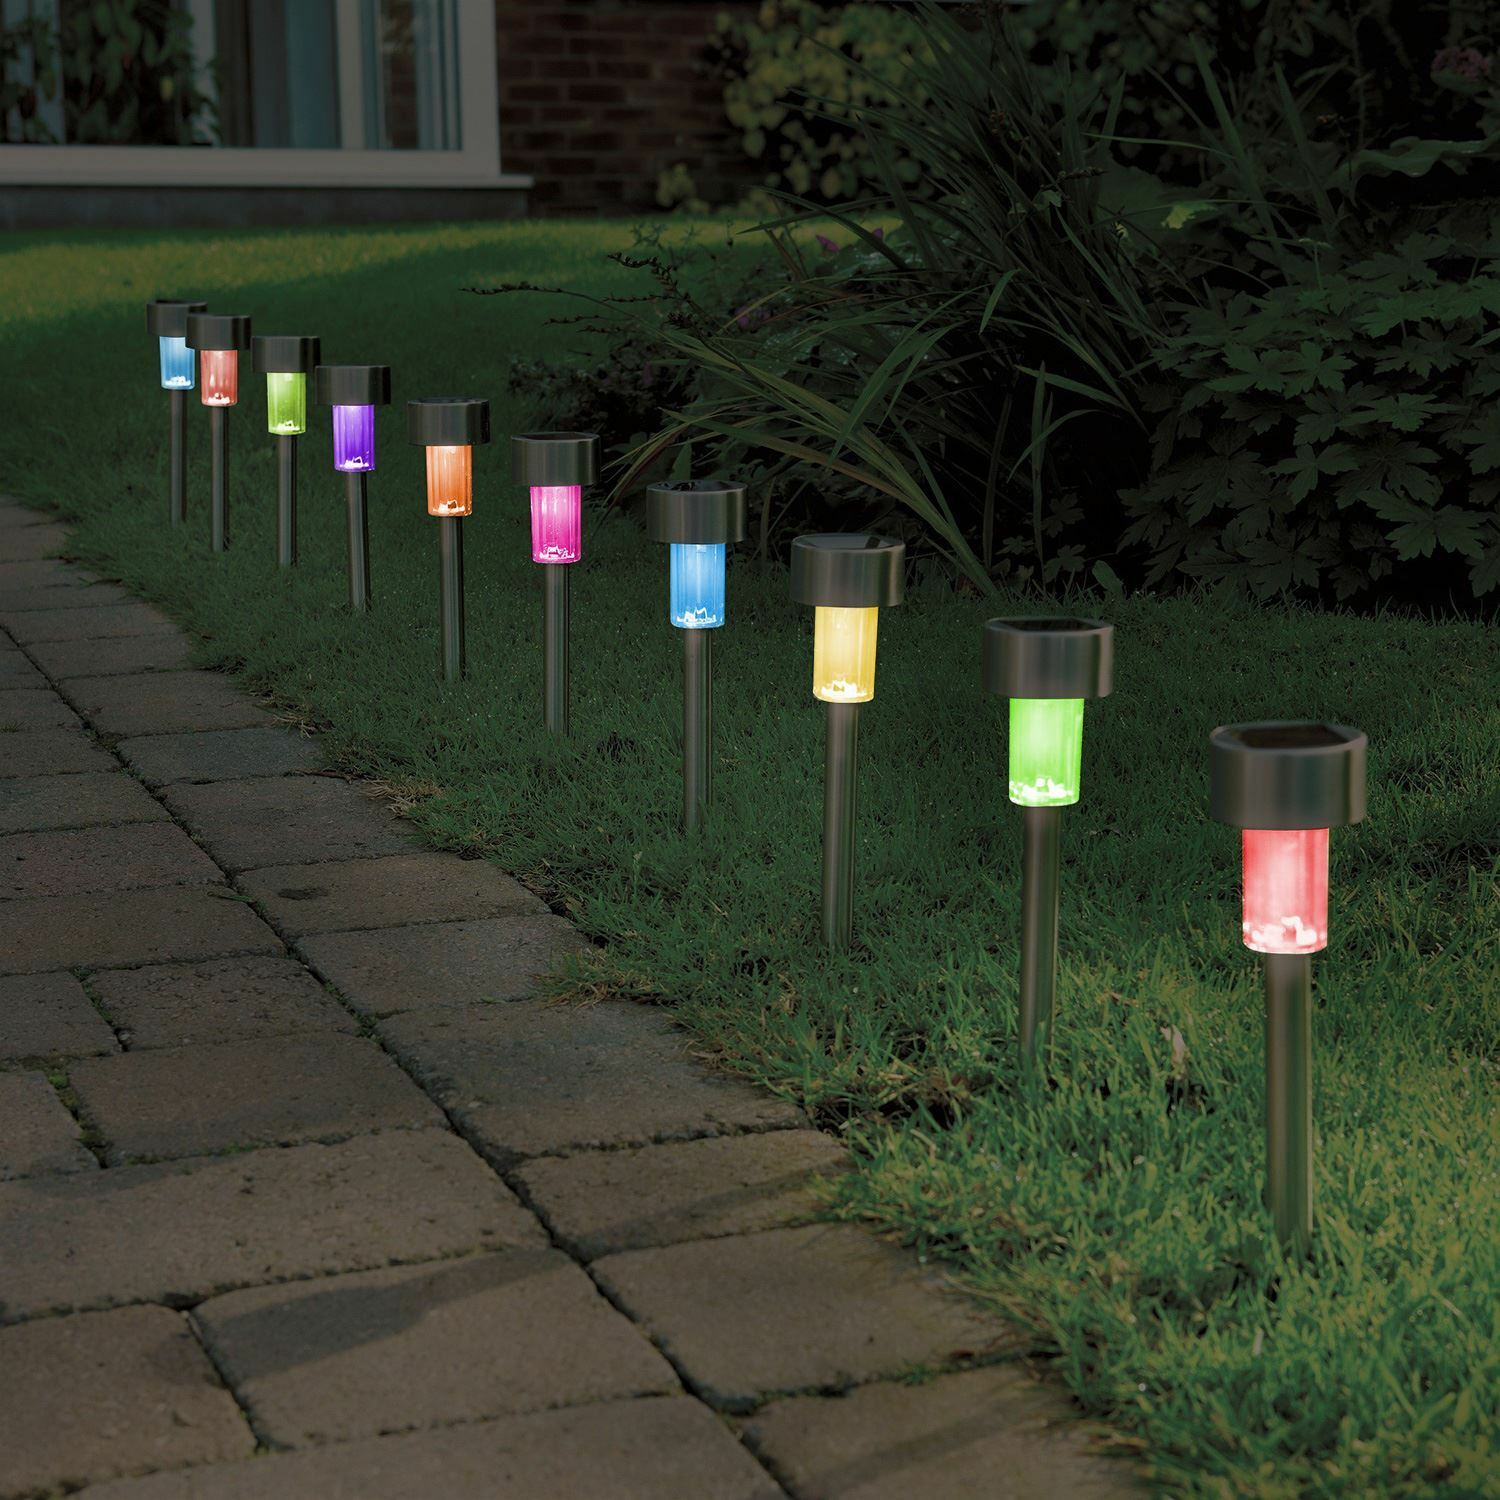 10 X Colour Changing Stainless Steel Solar Powered Garden Lights Lanterns Picclick Uk